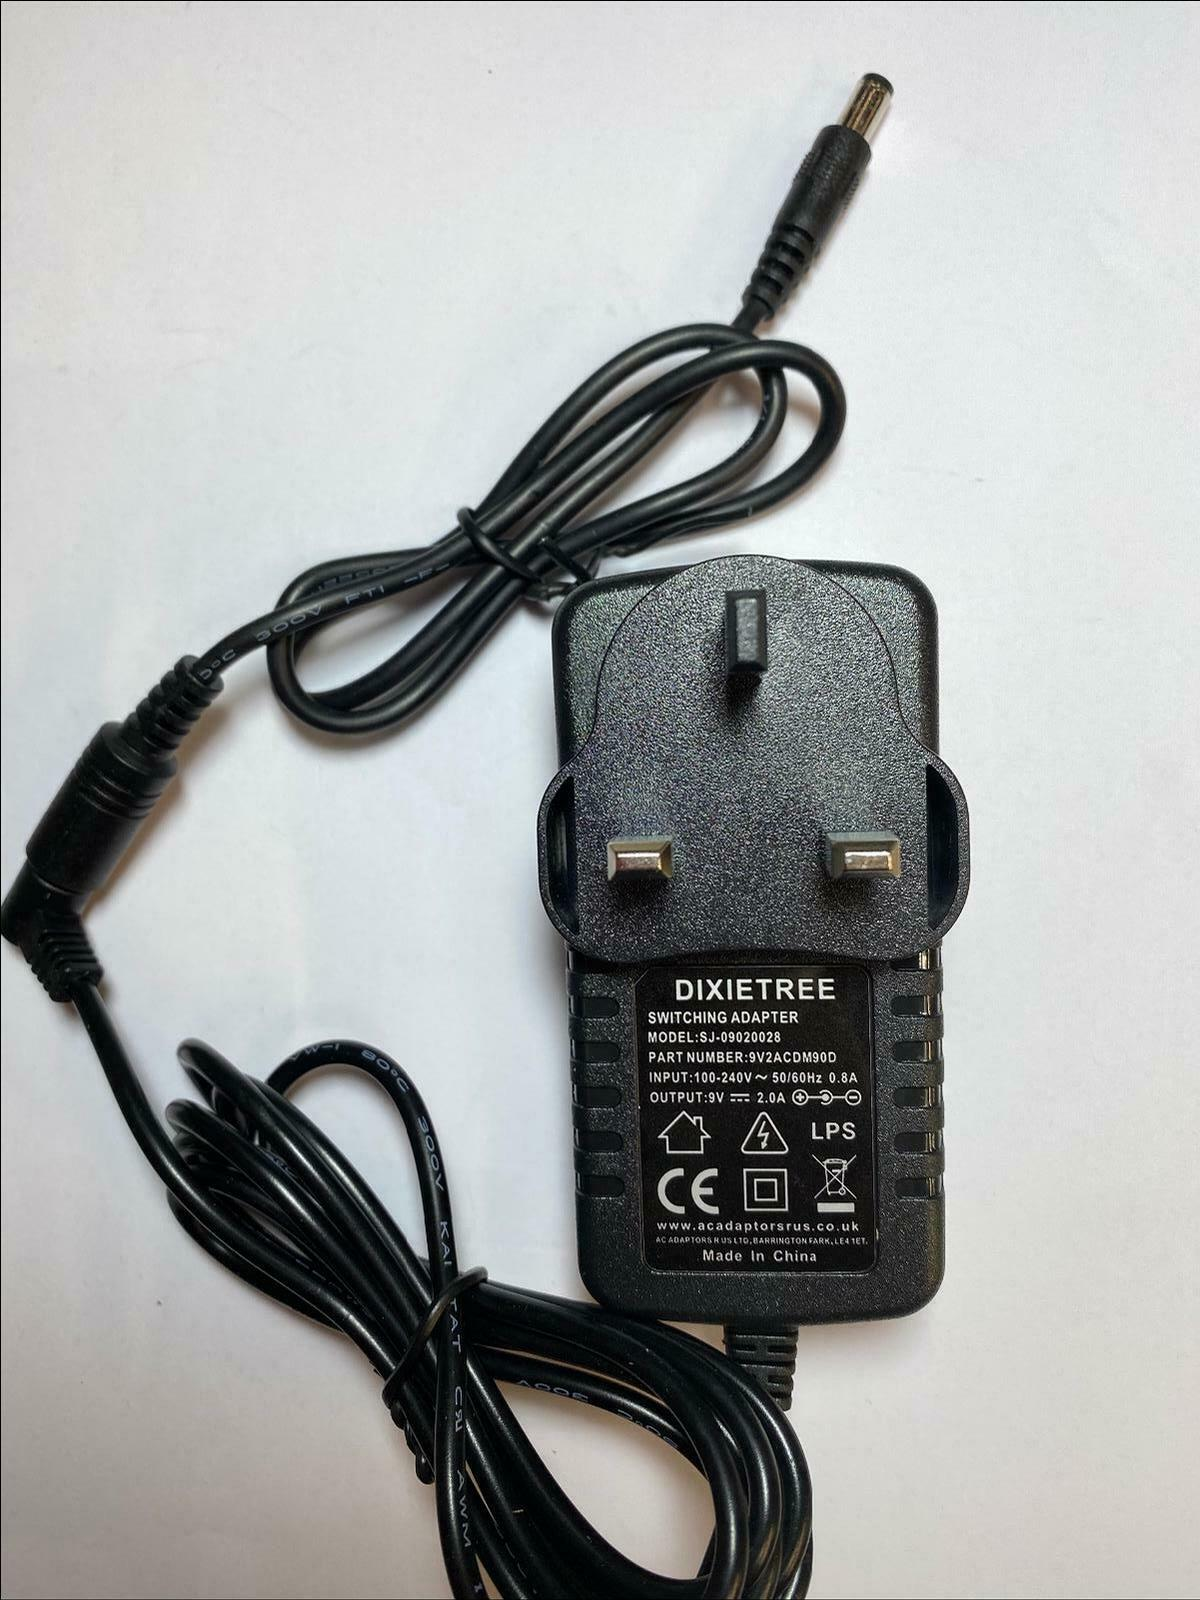 Replacement for 9V 1.2A AC-DC Power Adaptor for Roland / Rogers W50 Keyboard